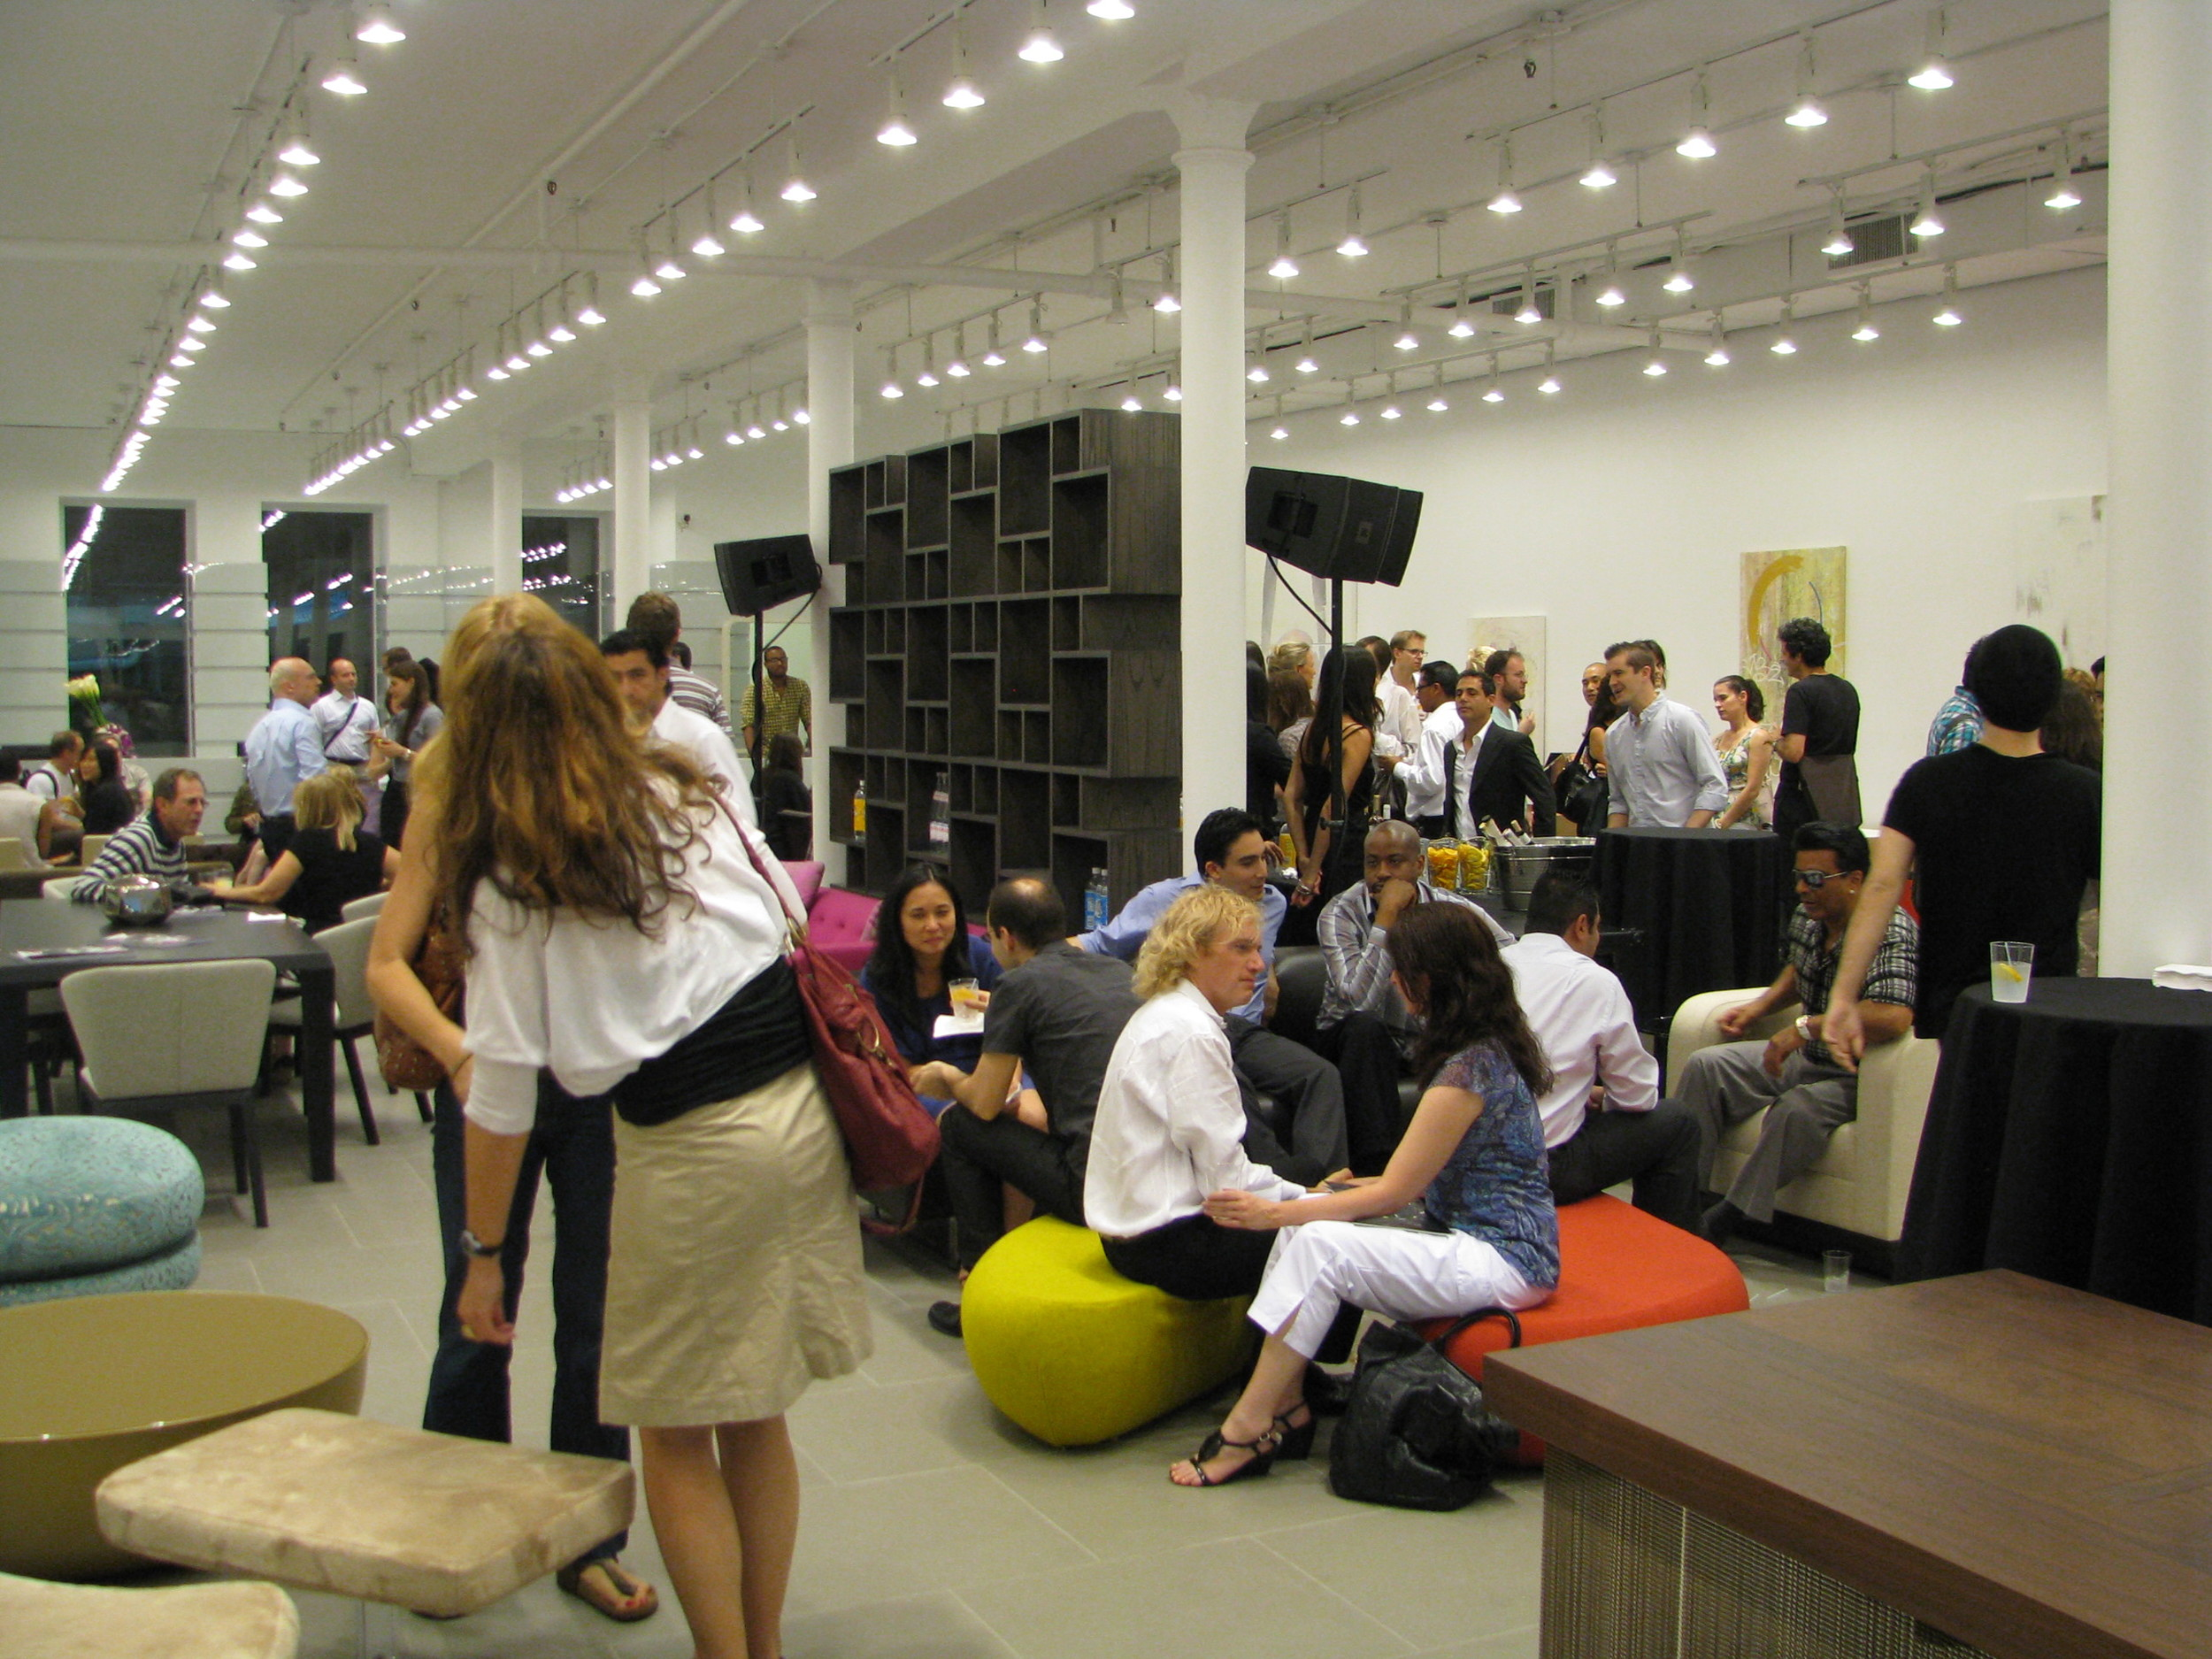 A product launch event in New York